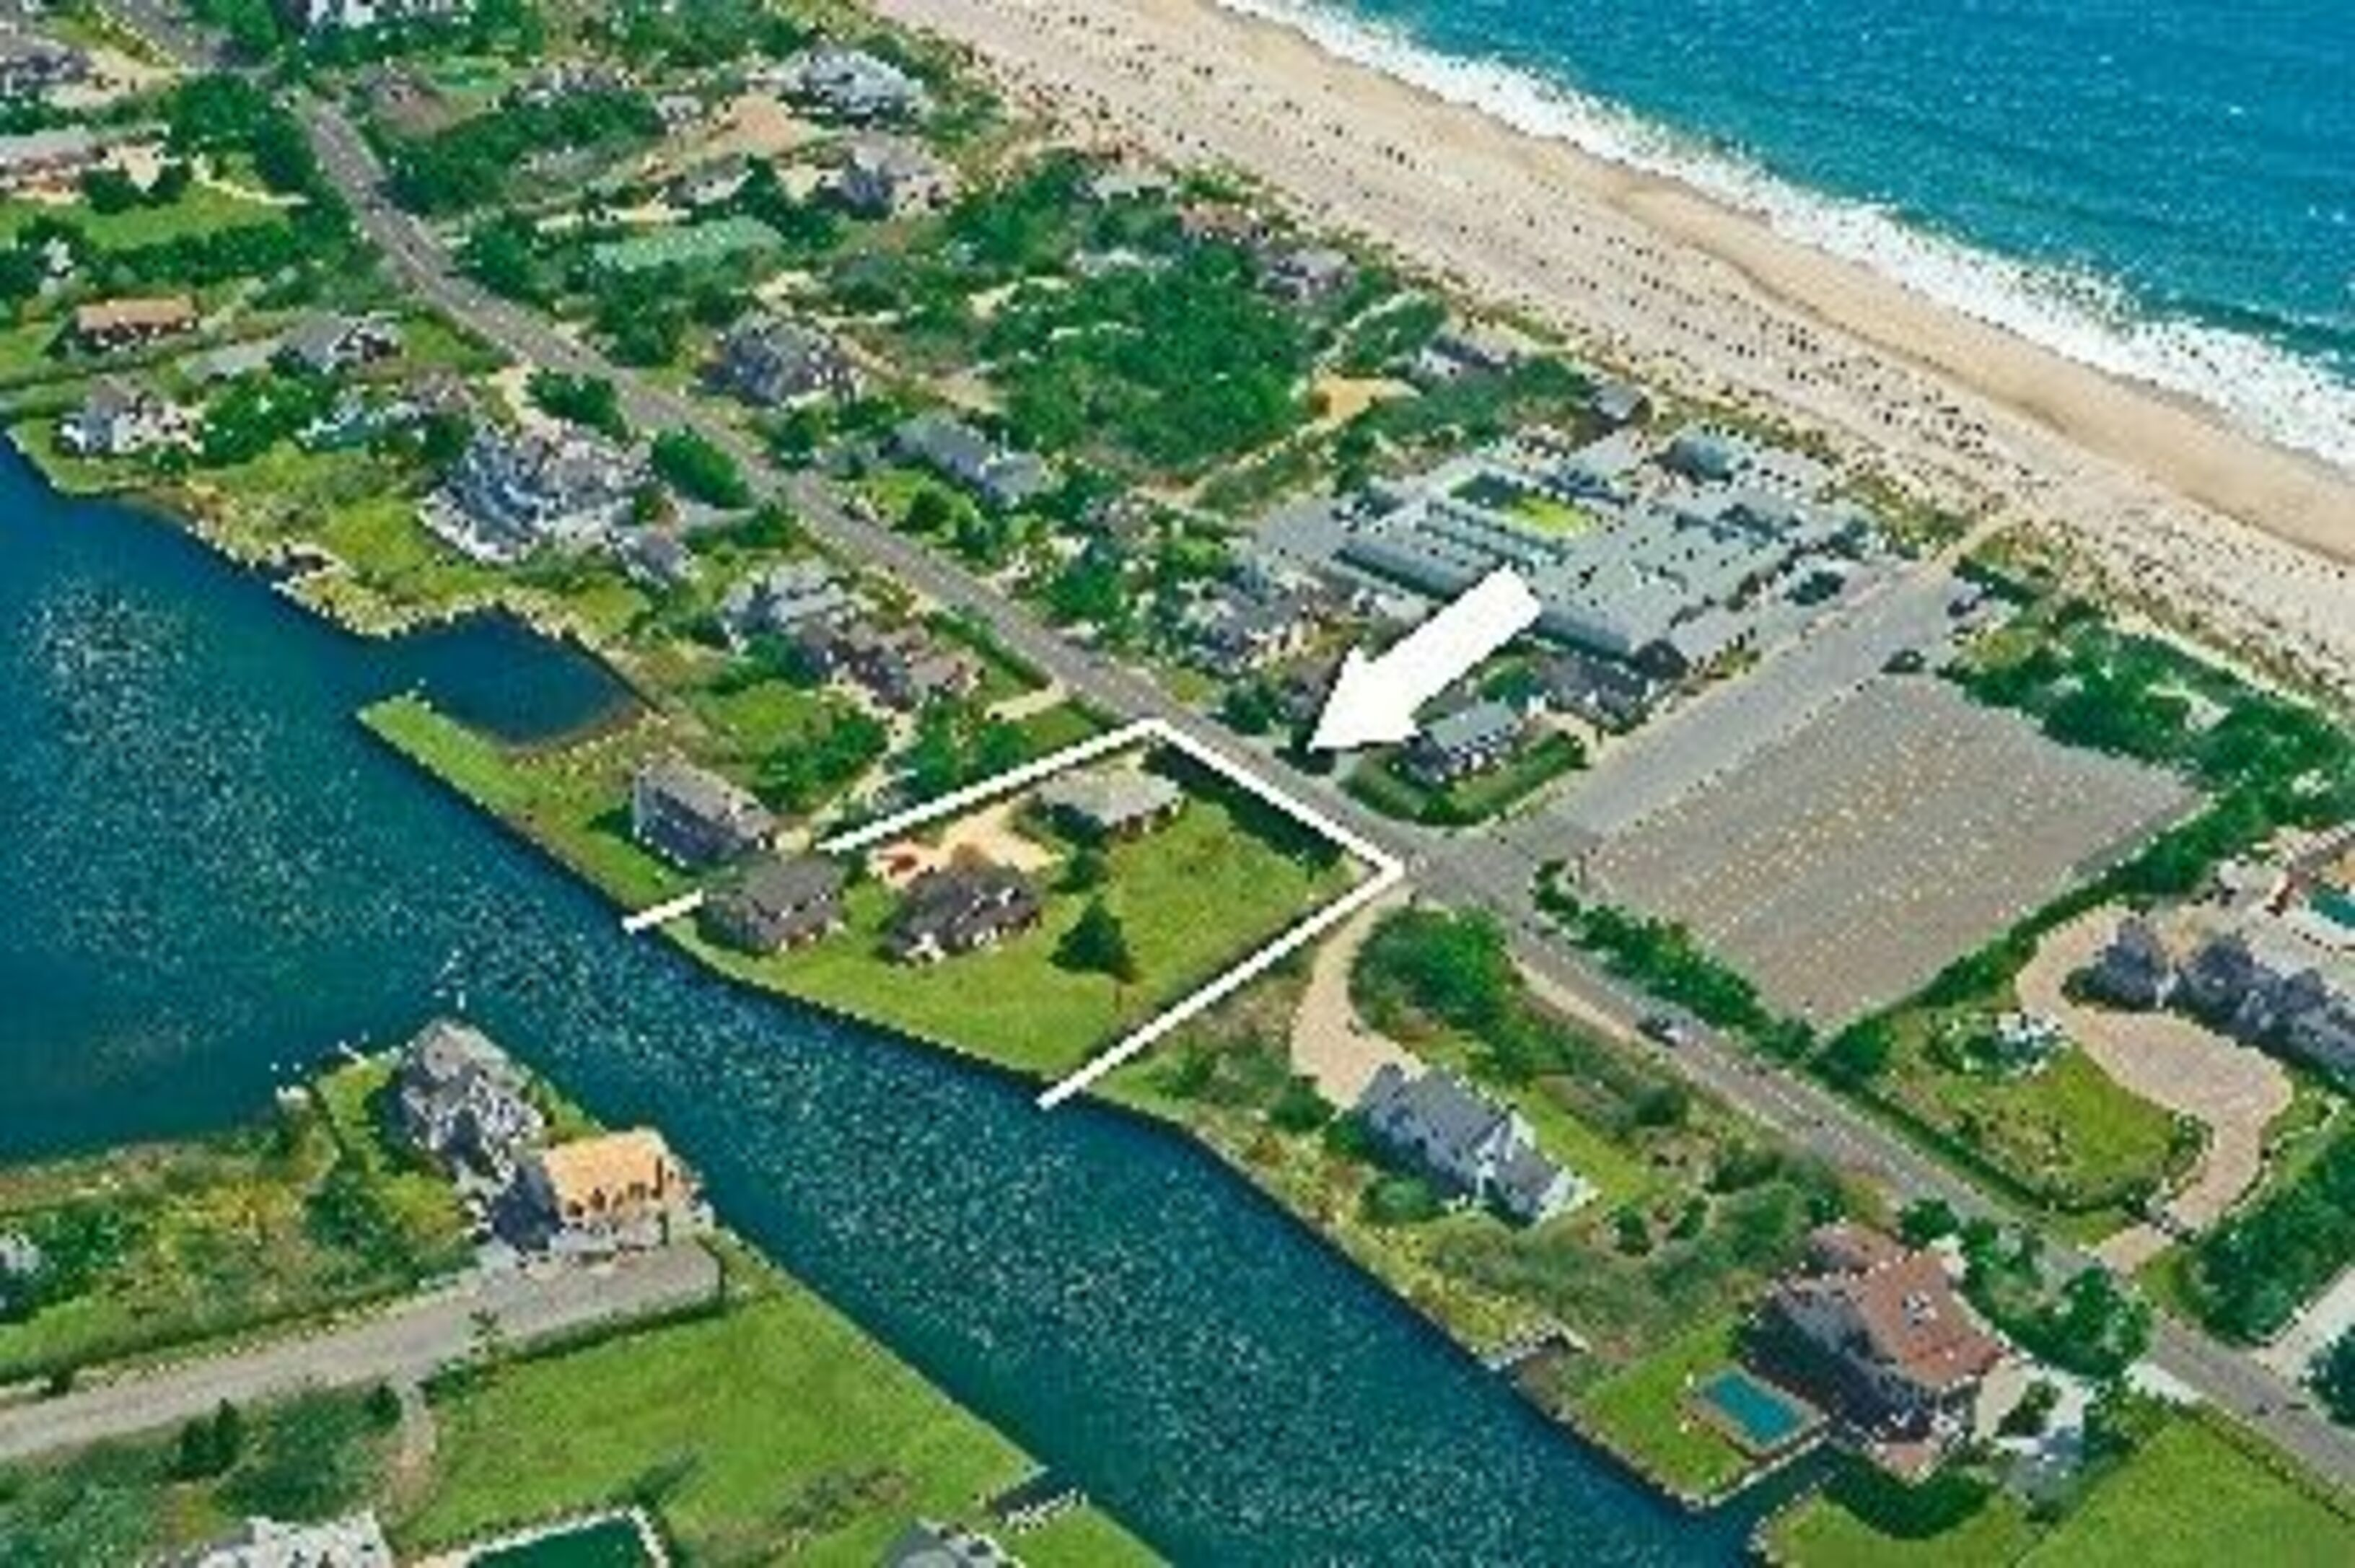 61 Dune Rd - Quogue South, New York